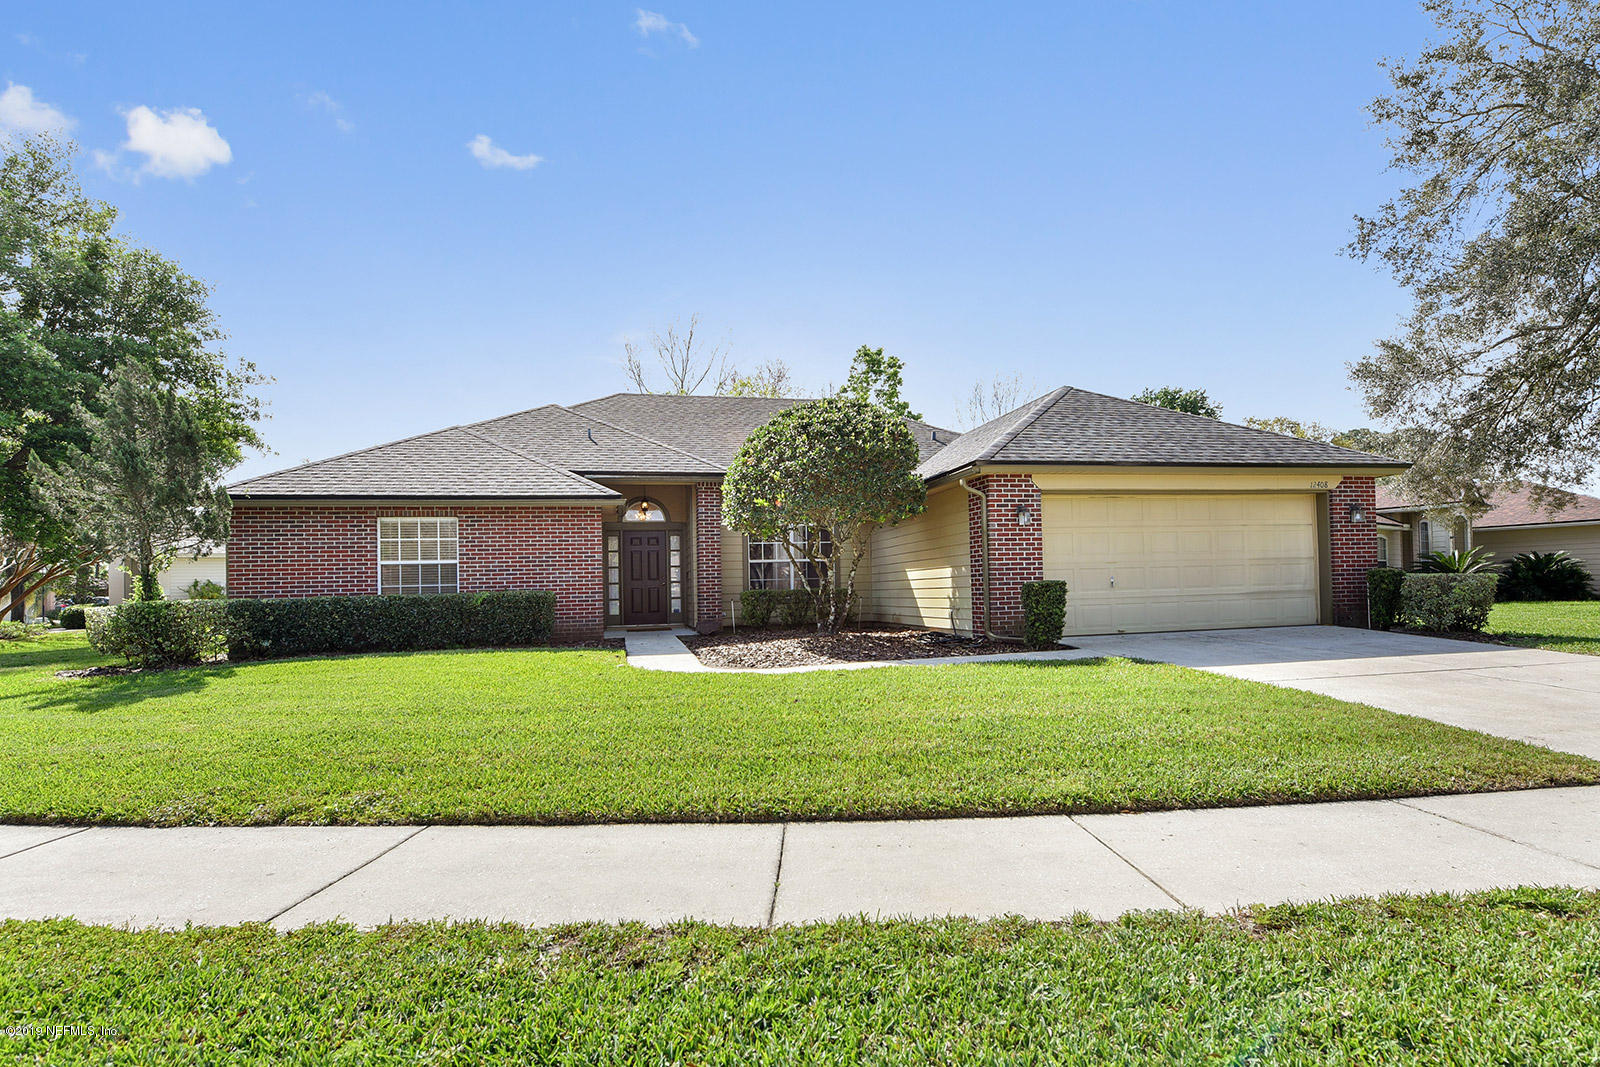 14208 HATTON CHASE, JACKSONVILLE, FLORIDA 32258, 4 Bedrooms Bedrooms, ,2 BathroomsBathrooms,Residential - single family,For sale,HATTON CHASE,984780